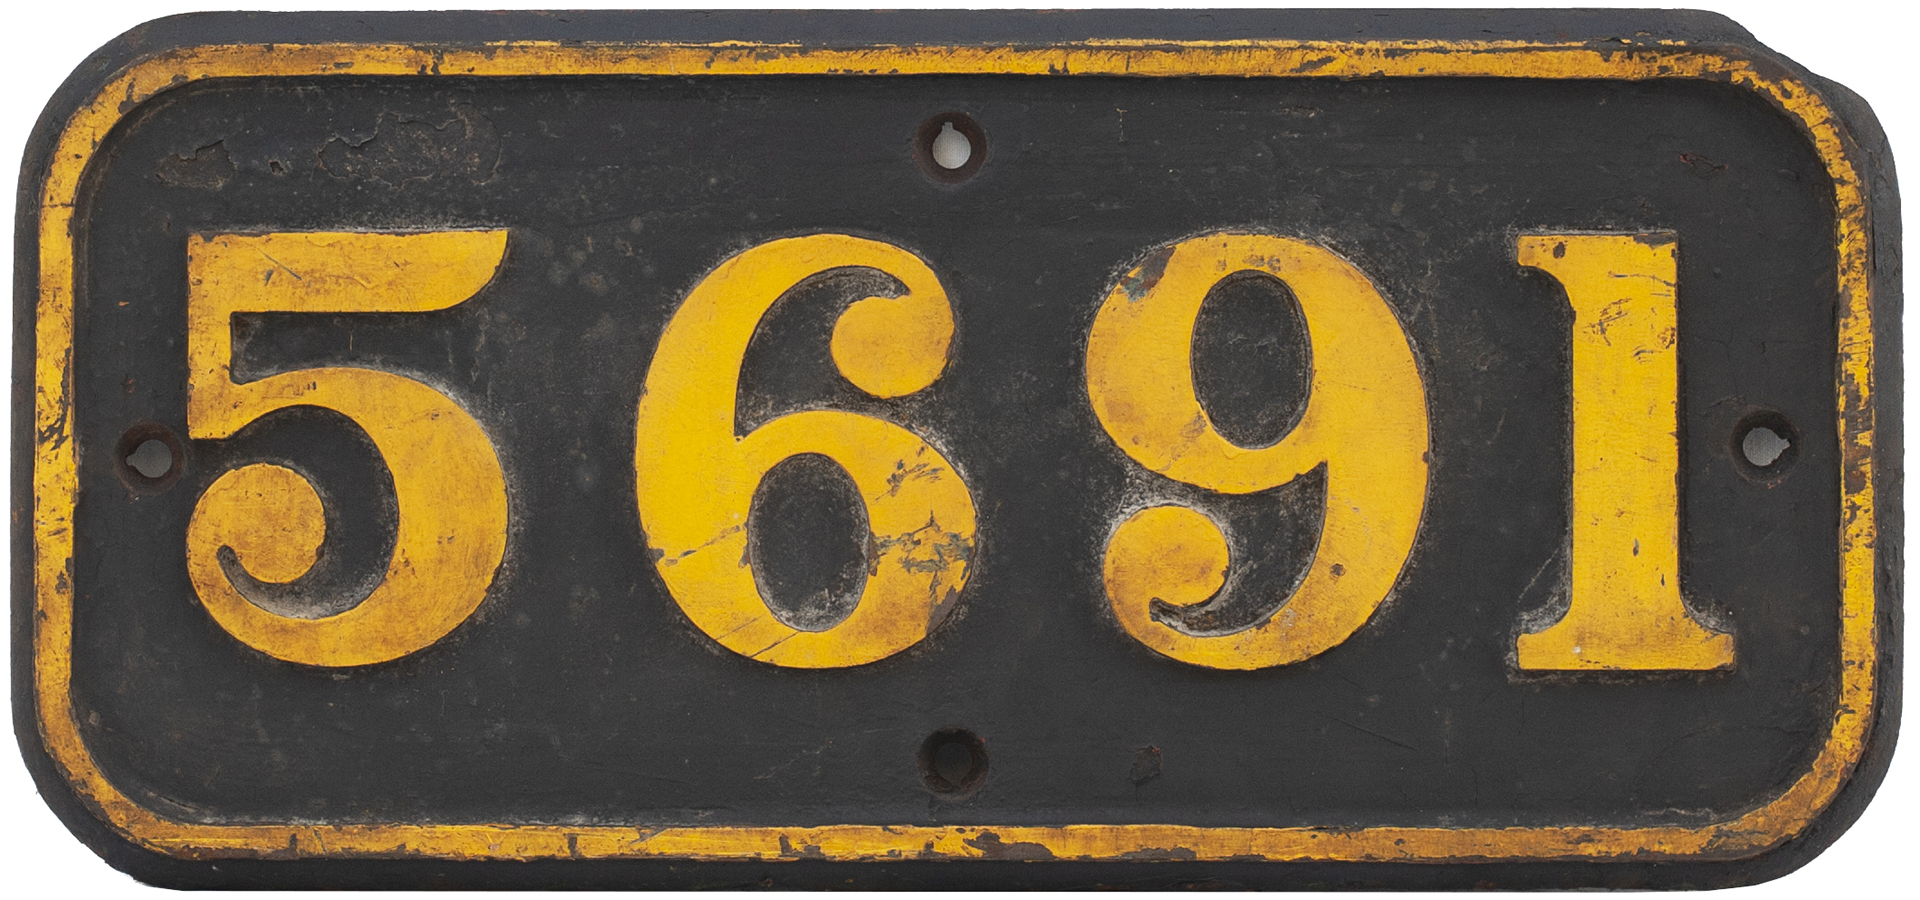 GWR Cast Iron Cabside Numberplate 5691 Ex Collett